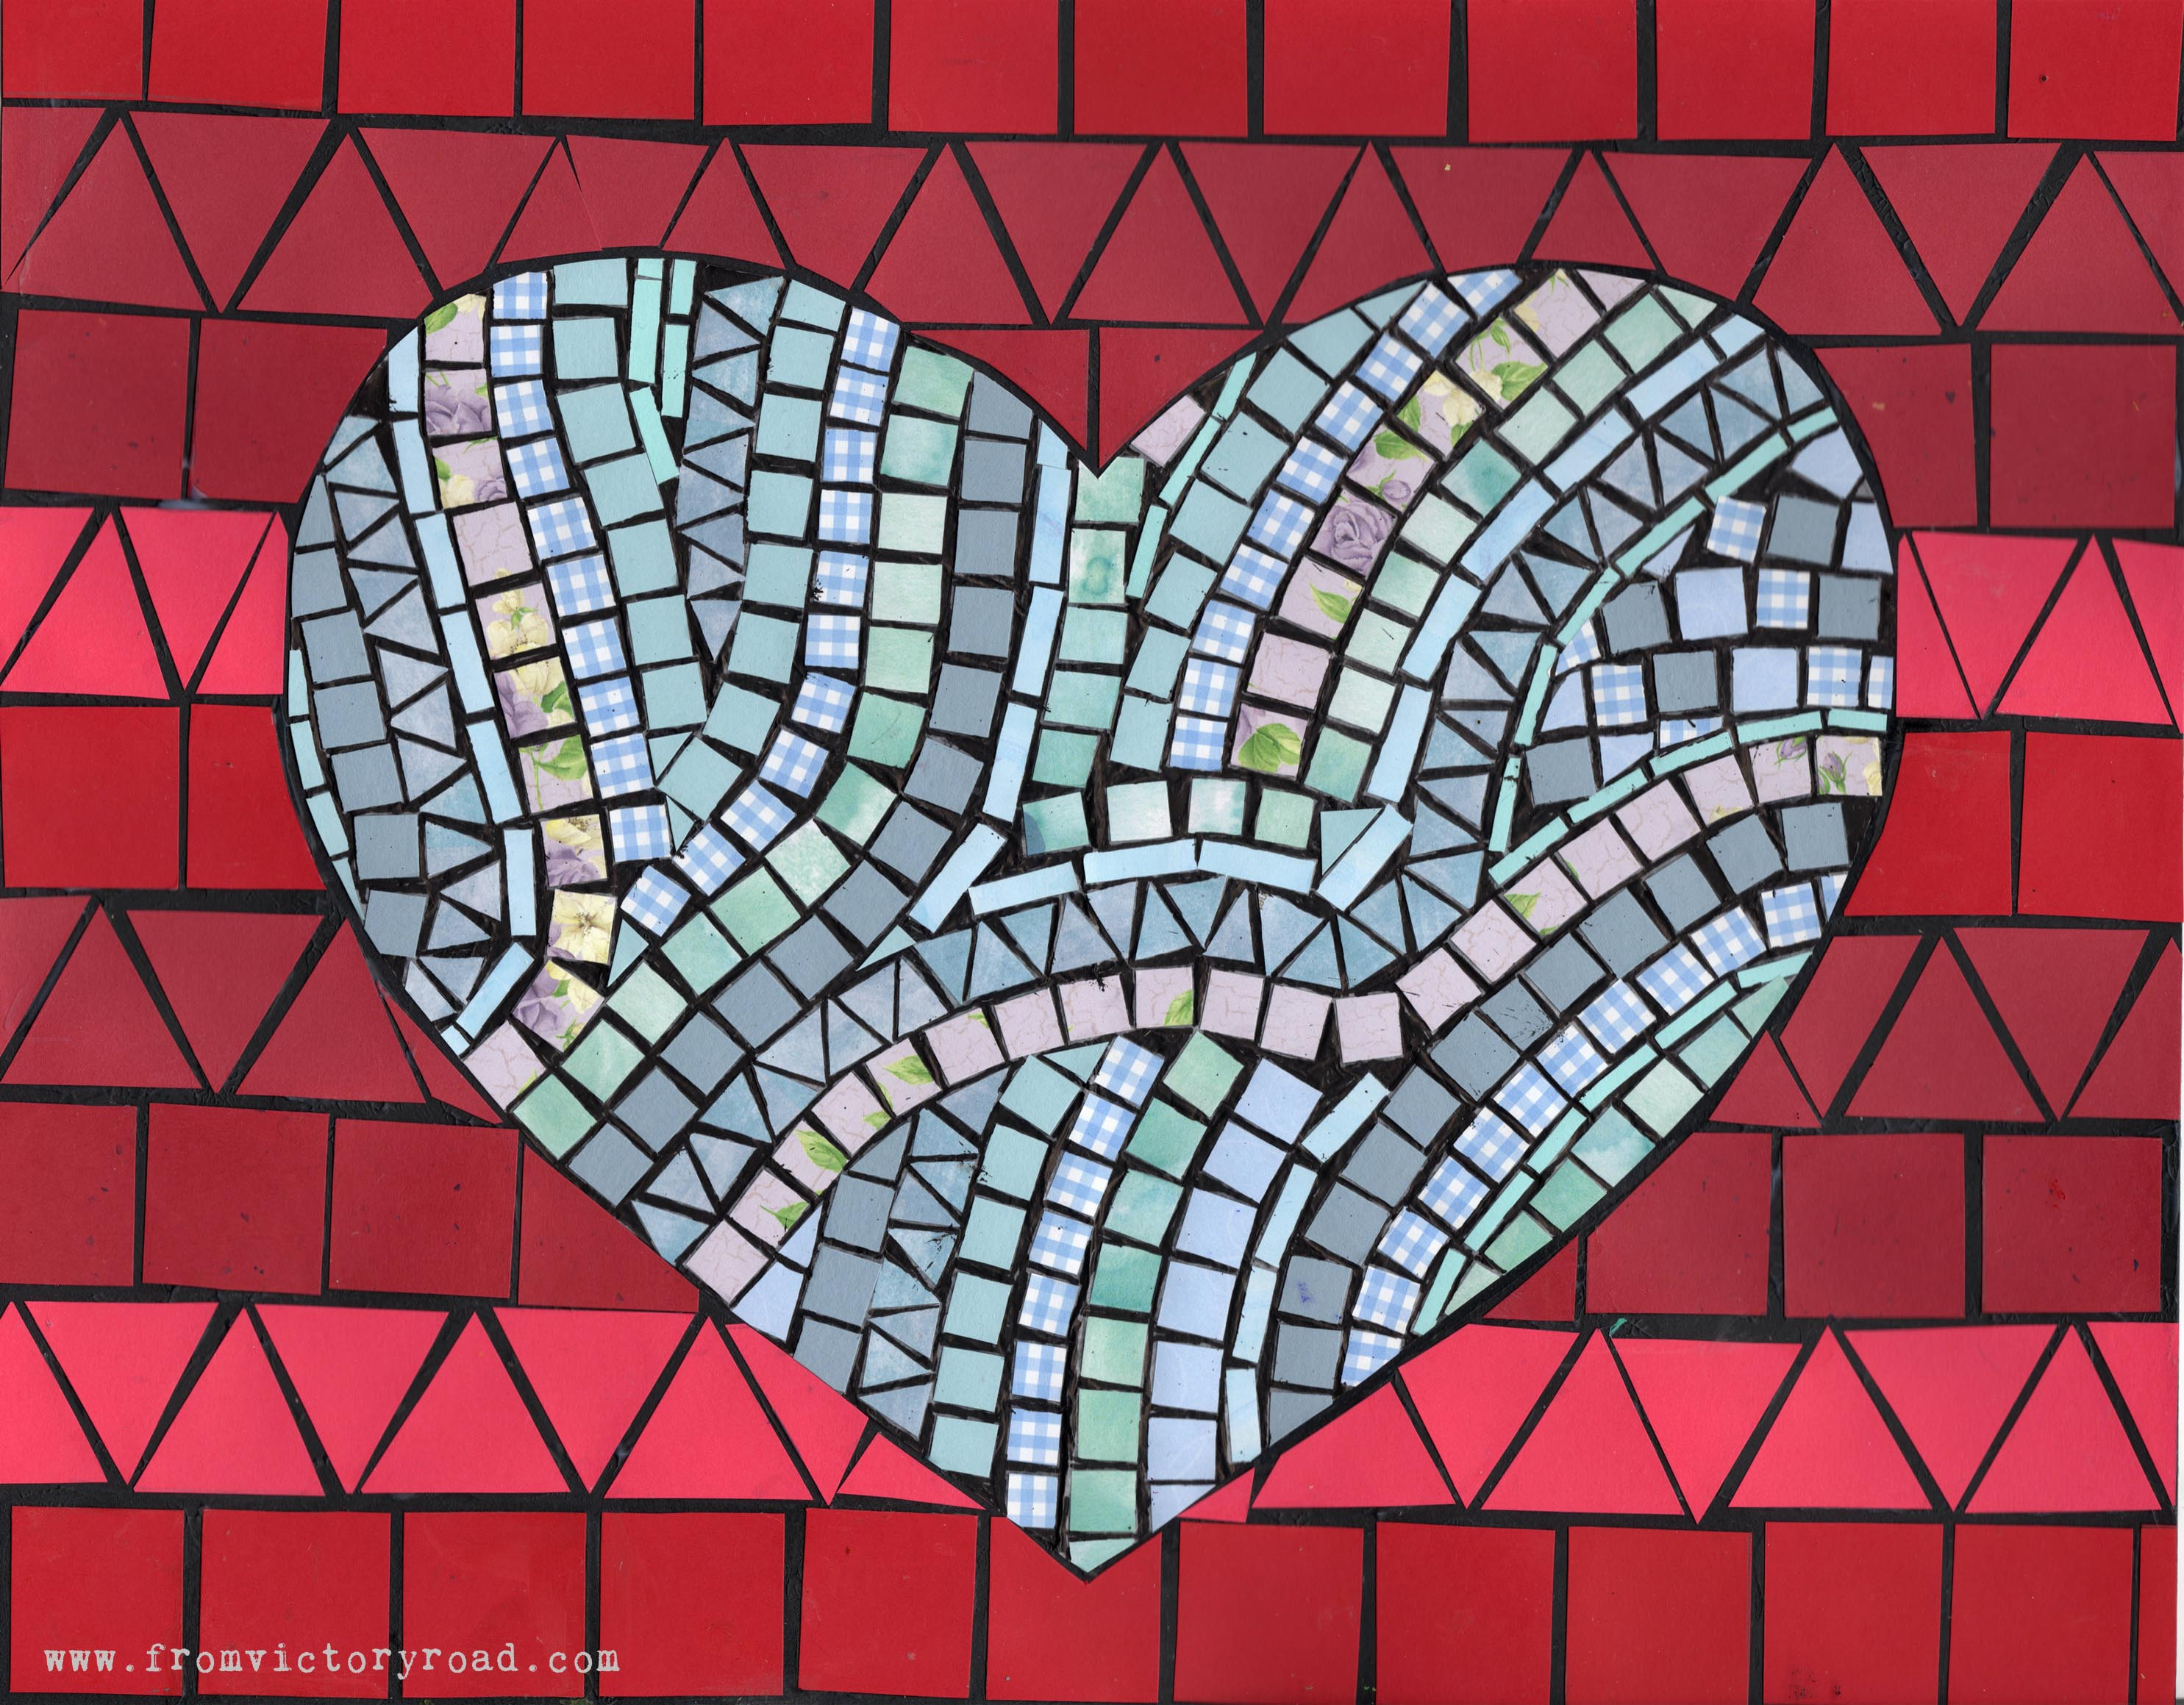 heart-mosaic-wm